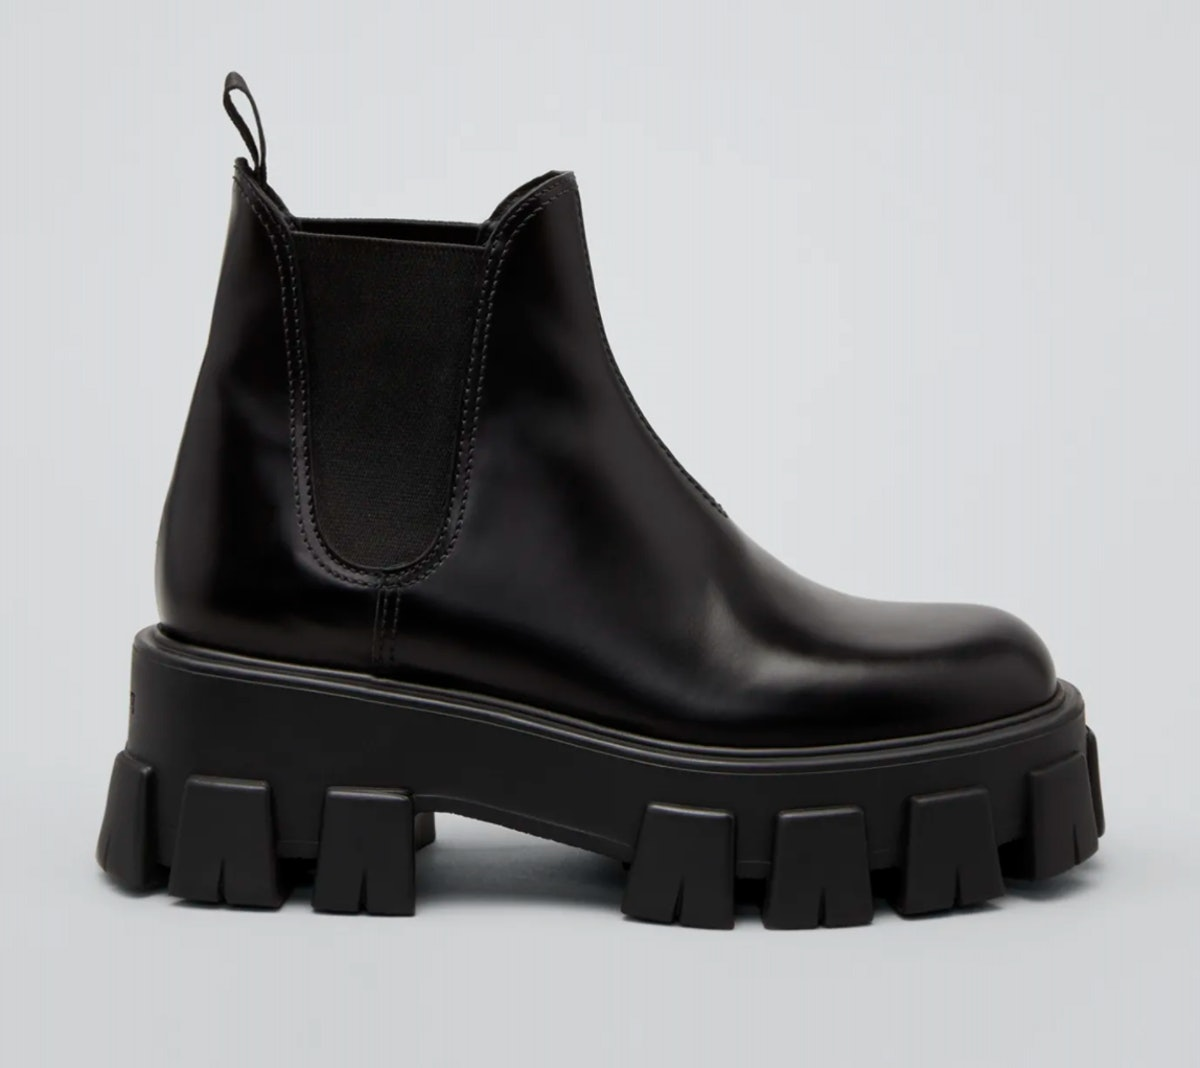 Prada's Leather Lugged-Sole Chelsea Boots in black.